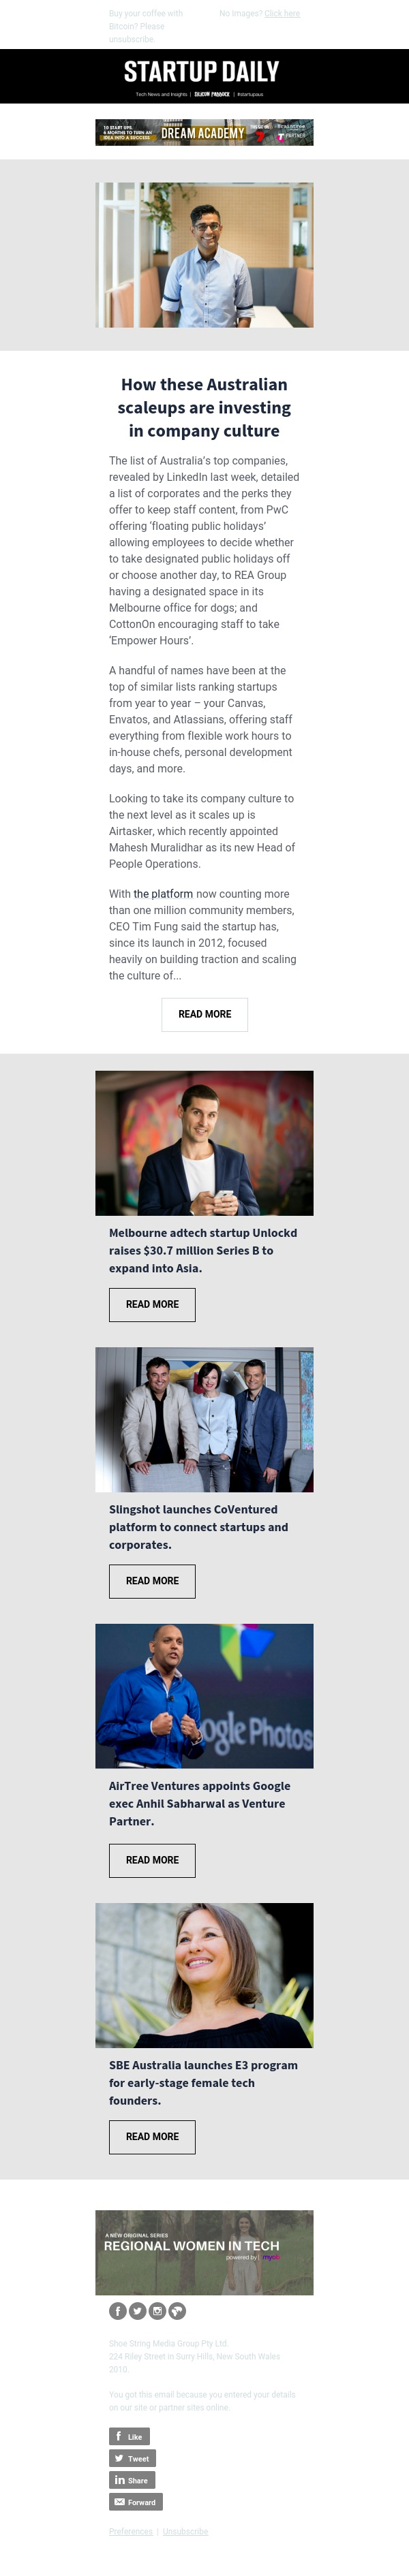 How these Australian scaleups are investing in company culture | Melbourne adtech startup Unlockd raises $30.7 million Series B to expand into Asia